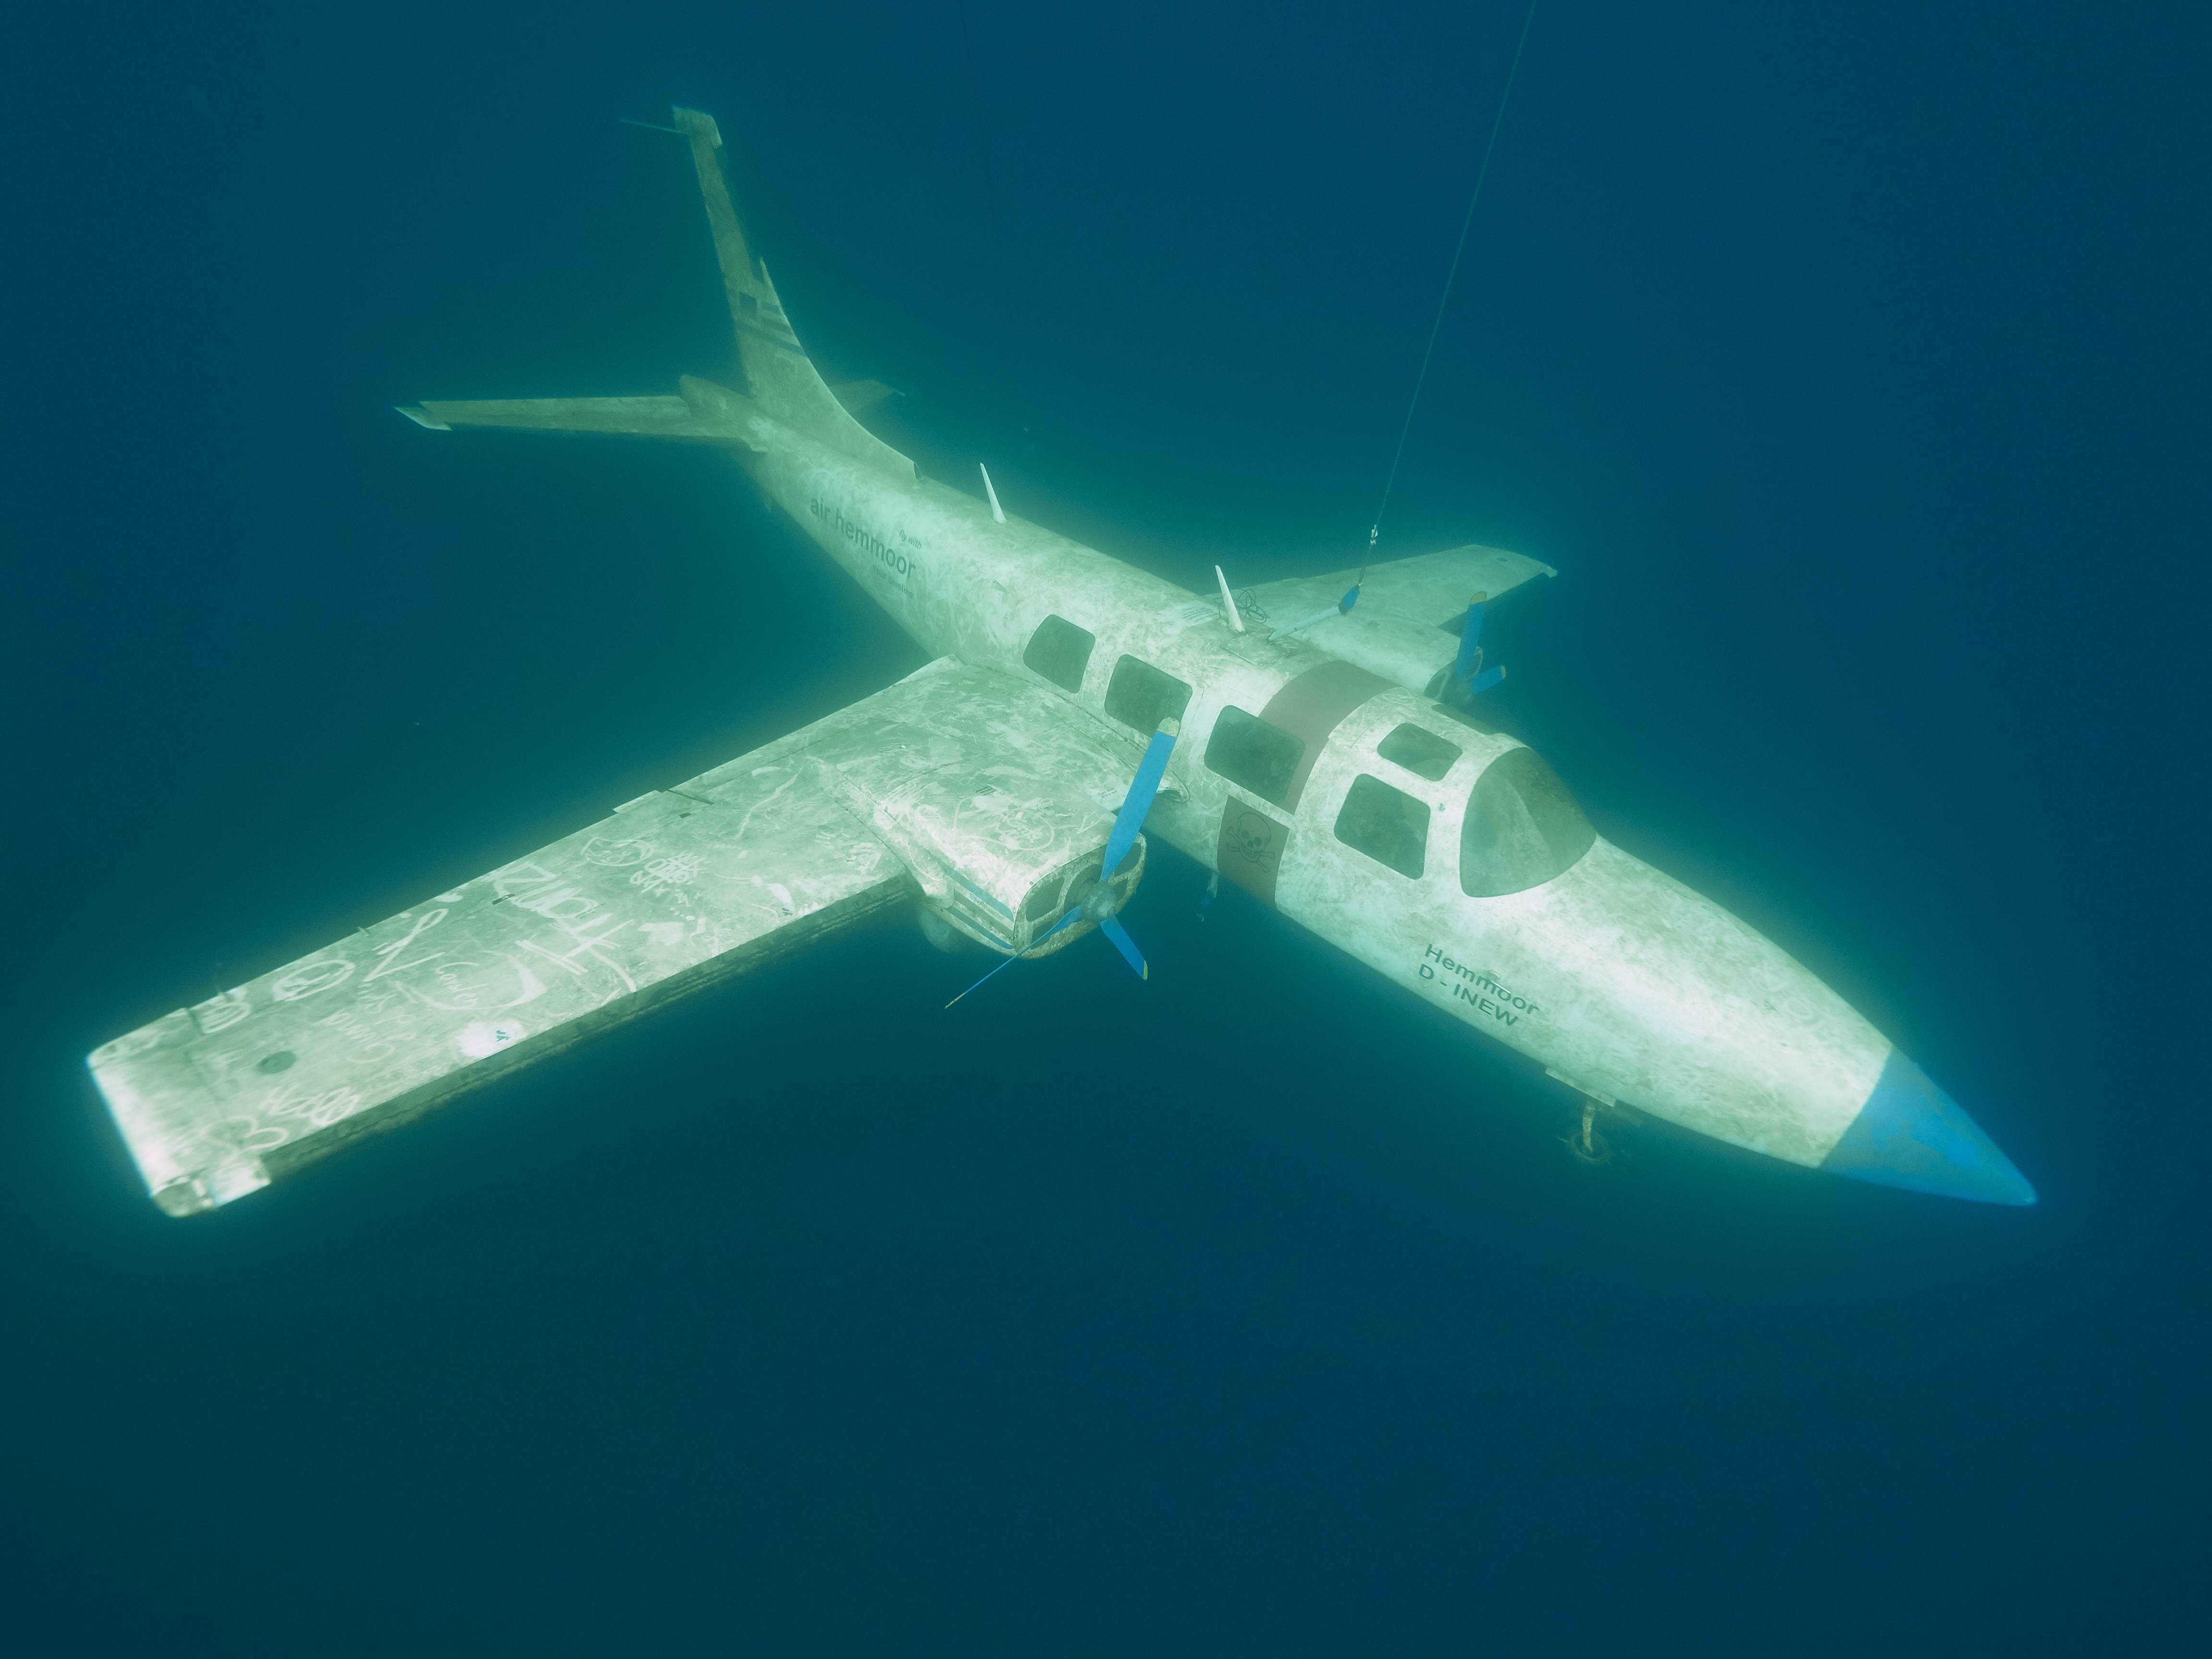 Freediving Kreidesee Hemmoor - Piper Aircraft P601